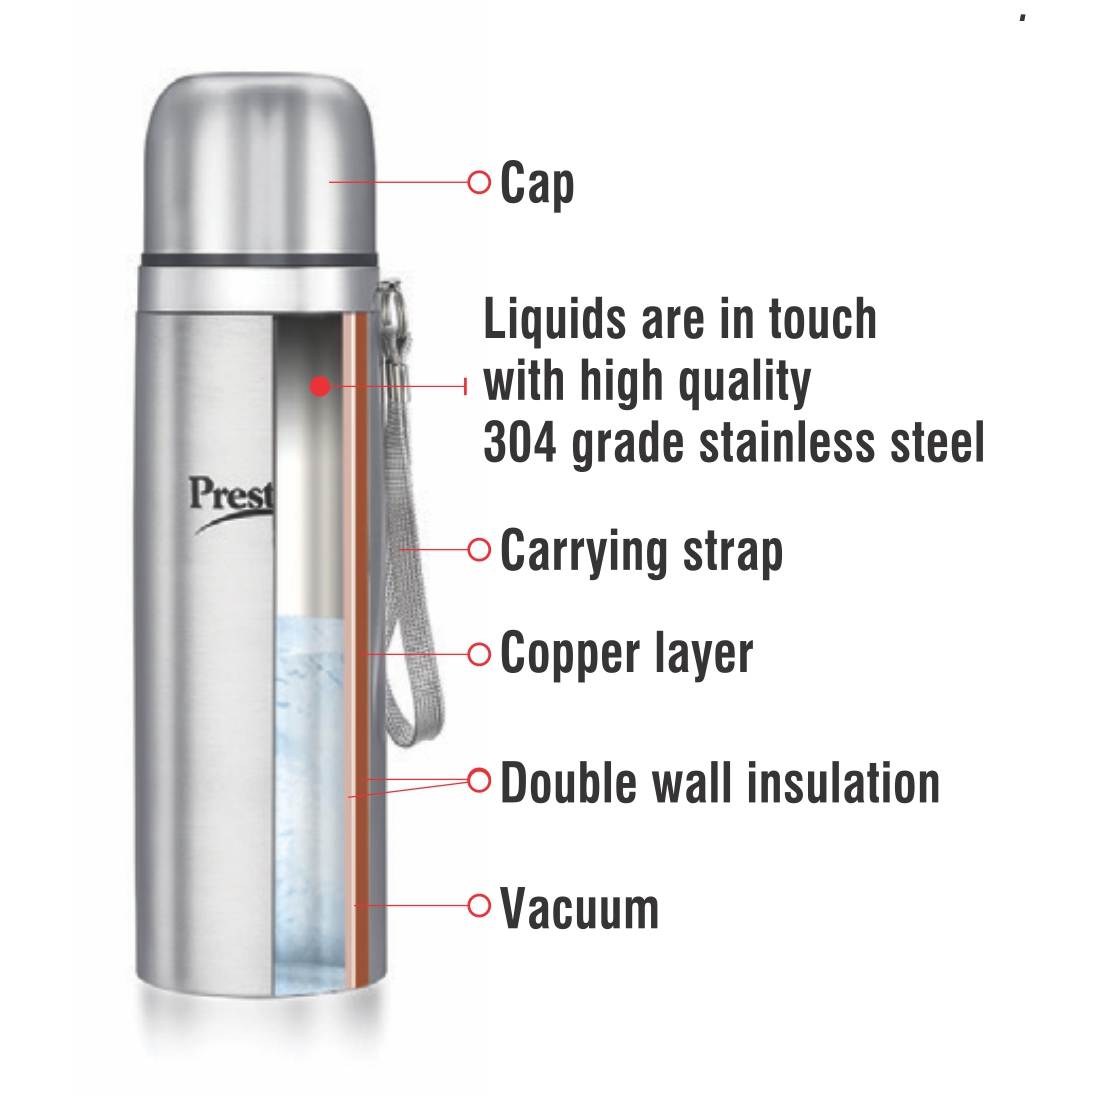 KNOW YOUR FLASK